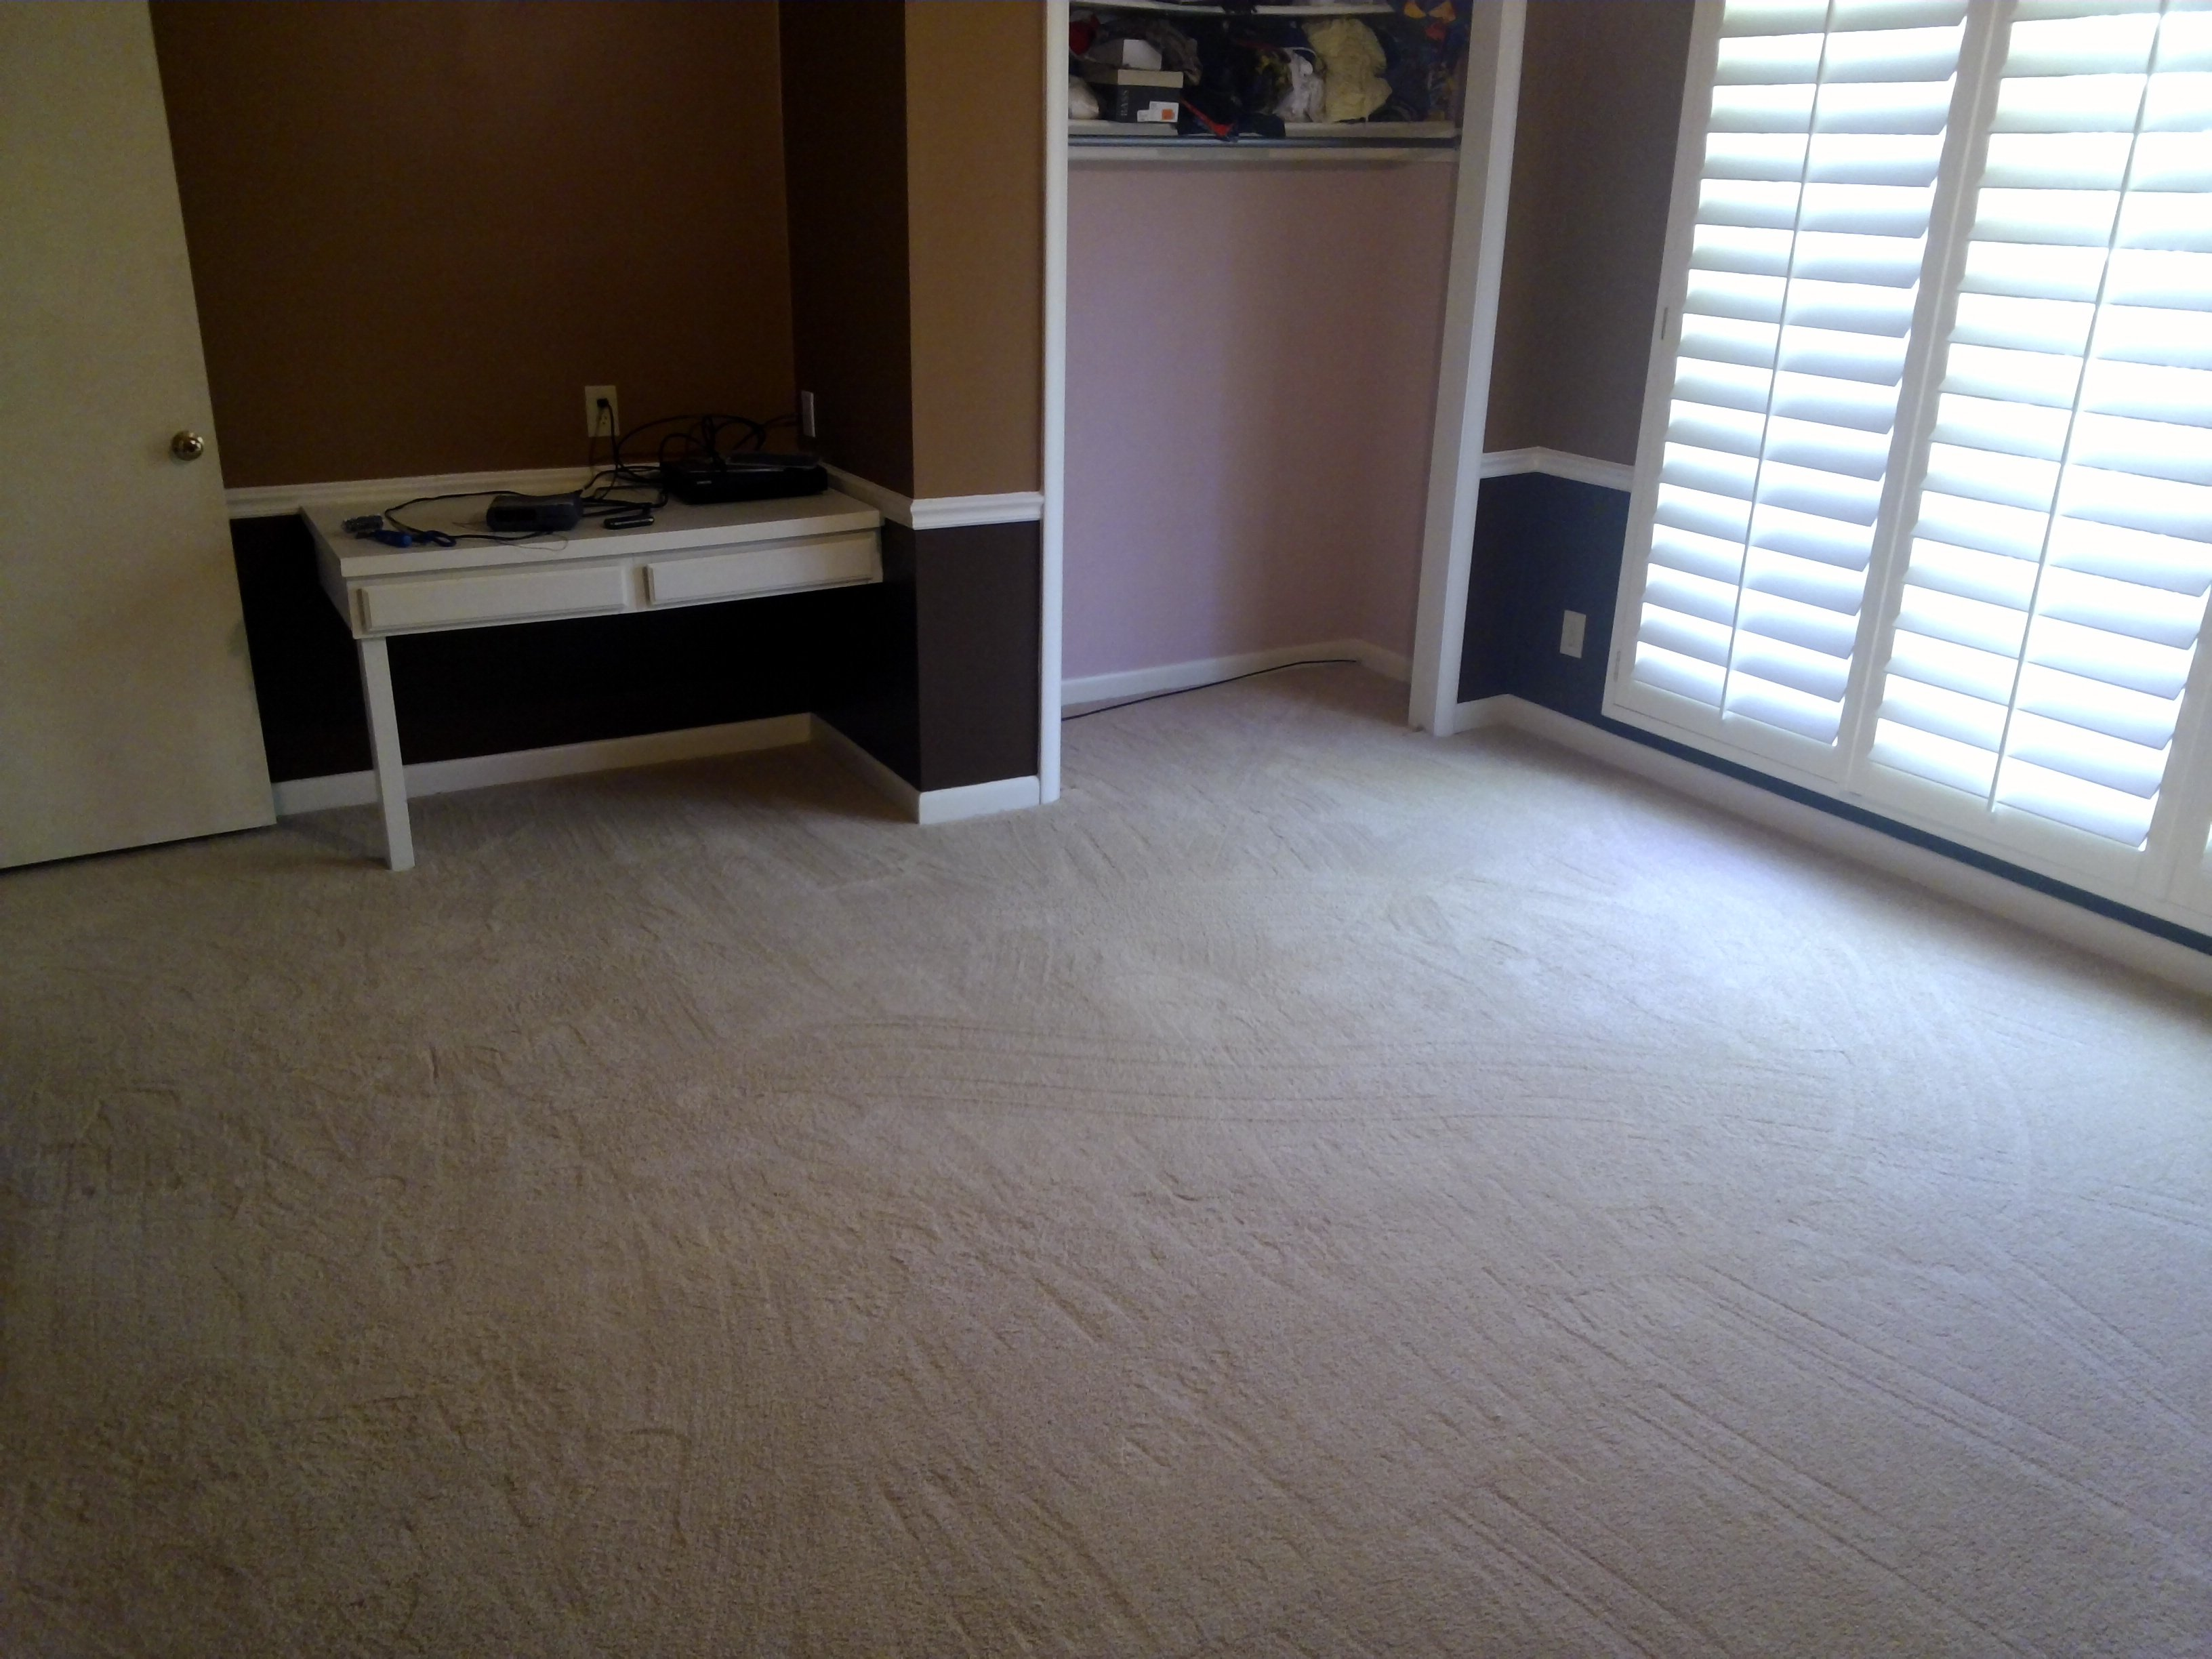 Carpet Cleaning Mistakes